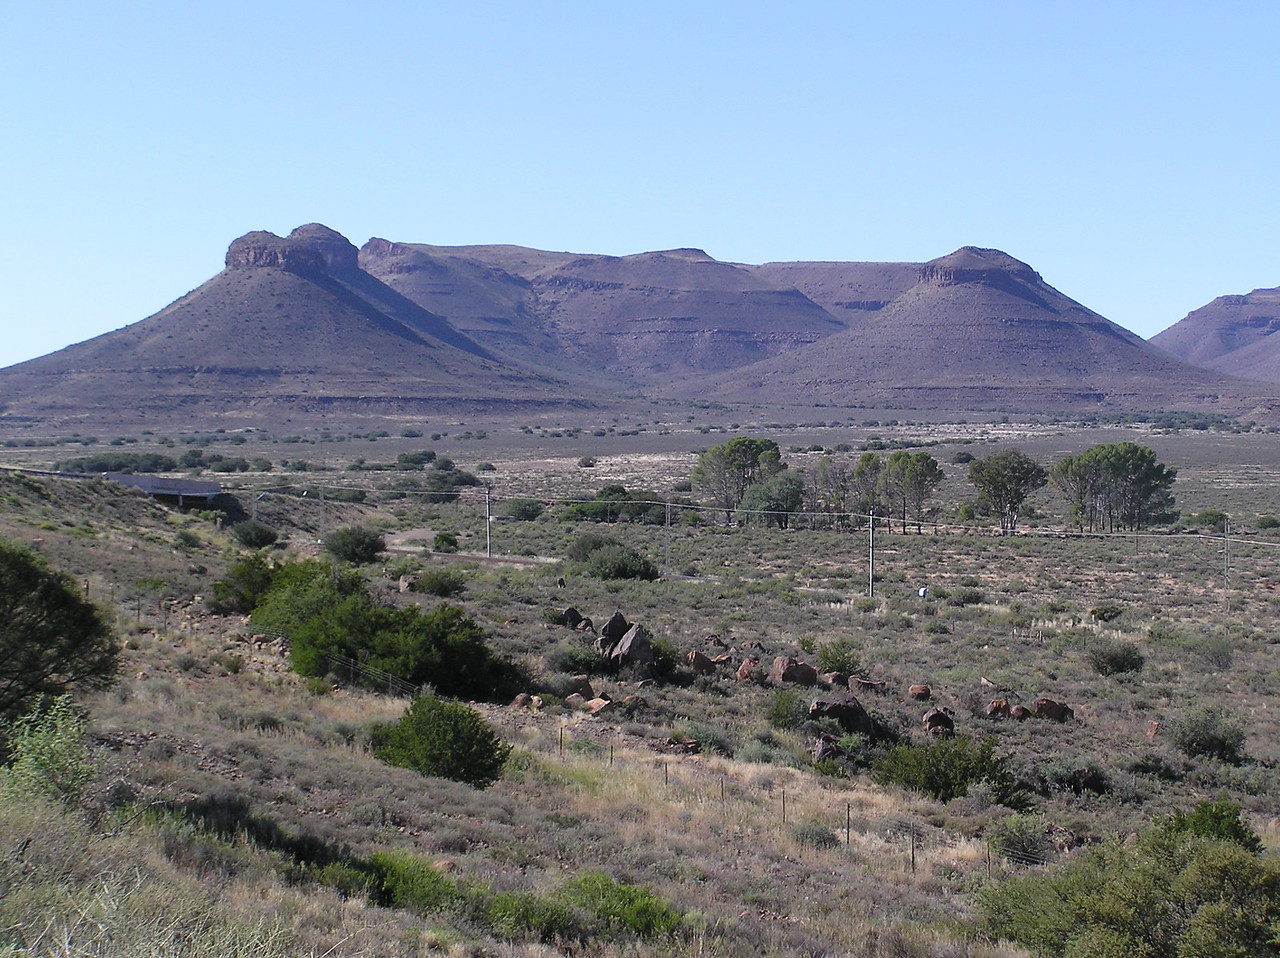 """The South African version of the Three Sisters<br /> <br /> We stopped briefly in Beaufort West for petrol (Rand 9.85/litre or CDN$1.23/litre for diesel) and then continued northeast along the N1 highway to the South African version of the Three Sisters - not quite as majestic as the Alberta version, but very pretty, flat-topped mountains nonetheless. Along this busy stretch of the highway, we passed several troops of vervet monkeys and signs warning of """"rots storting"""" – rocks falling!"""